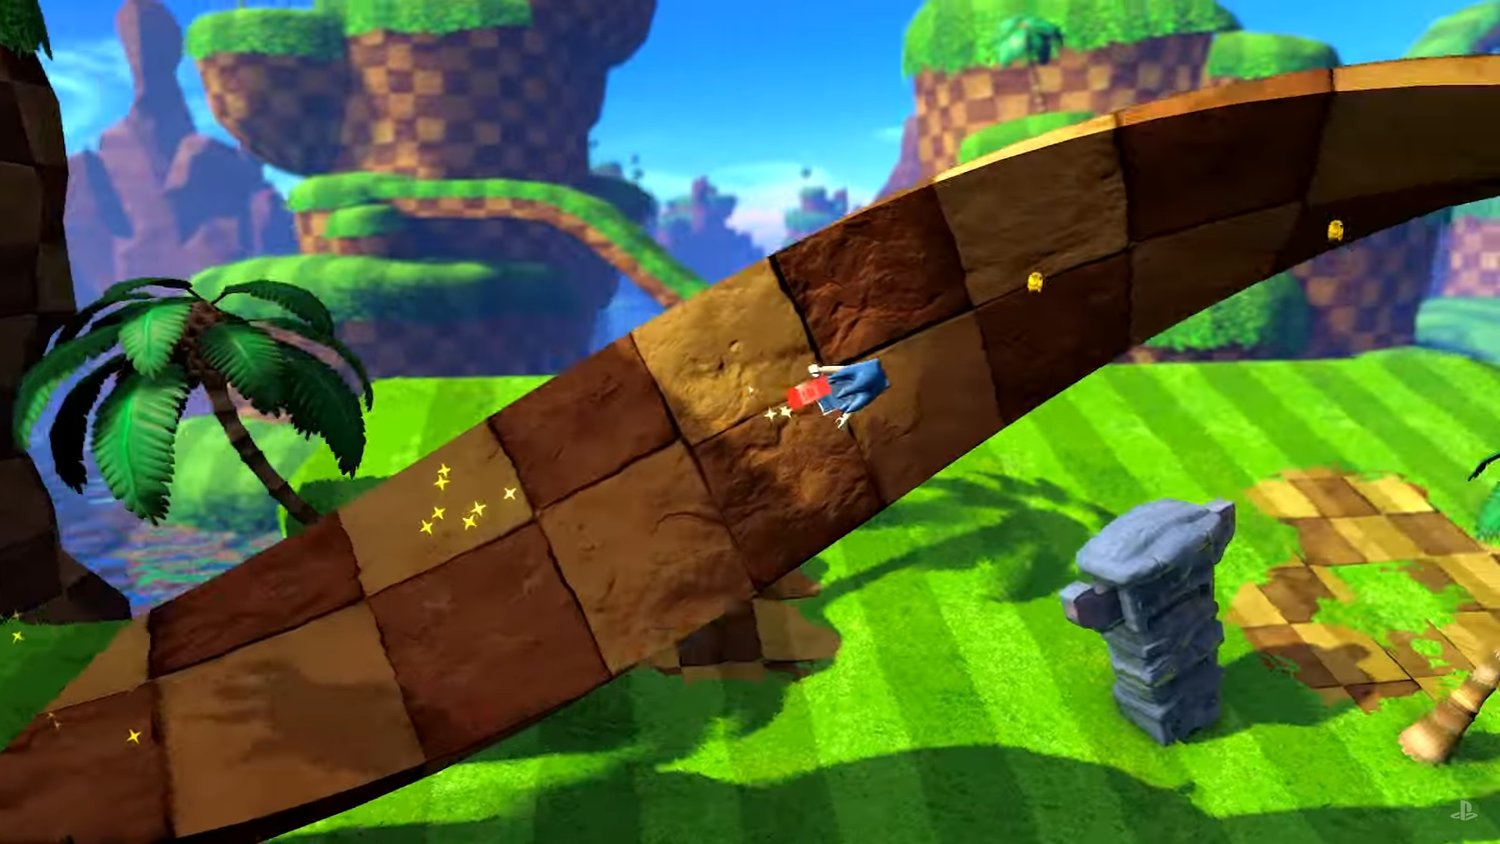 Lego Dimensions Sonic Level Pack Looks To Be Its Most Impressive Yet Gametyrant